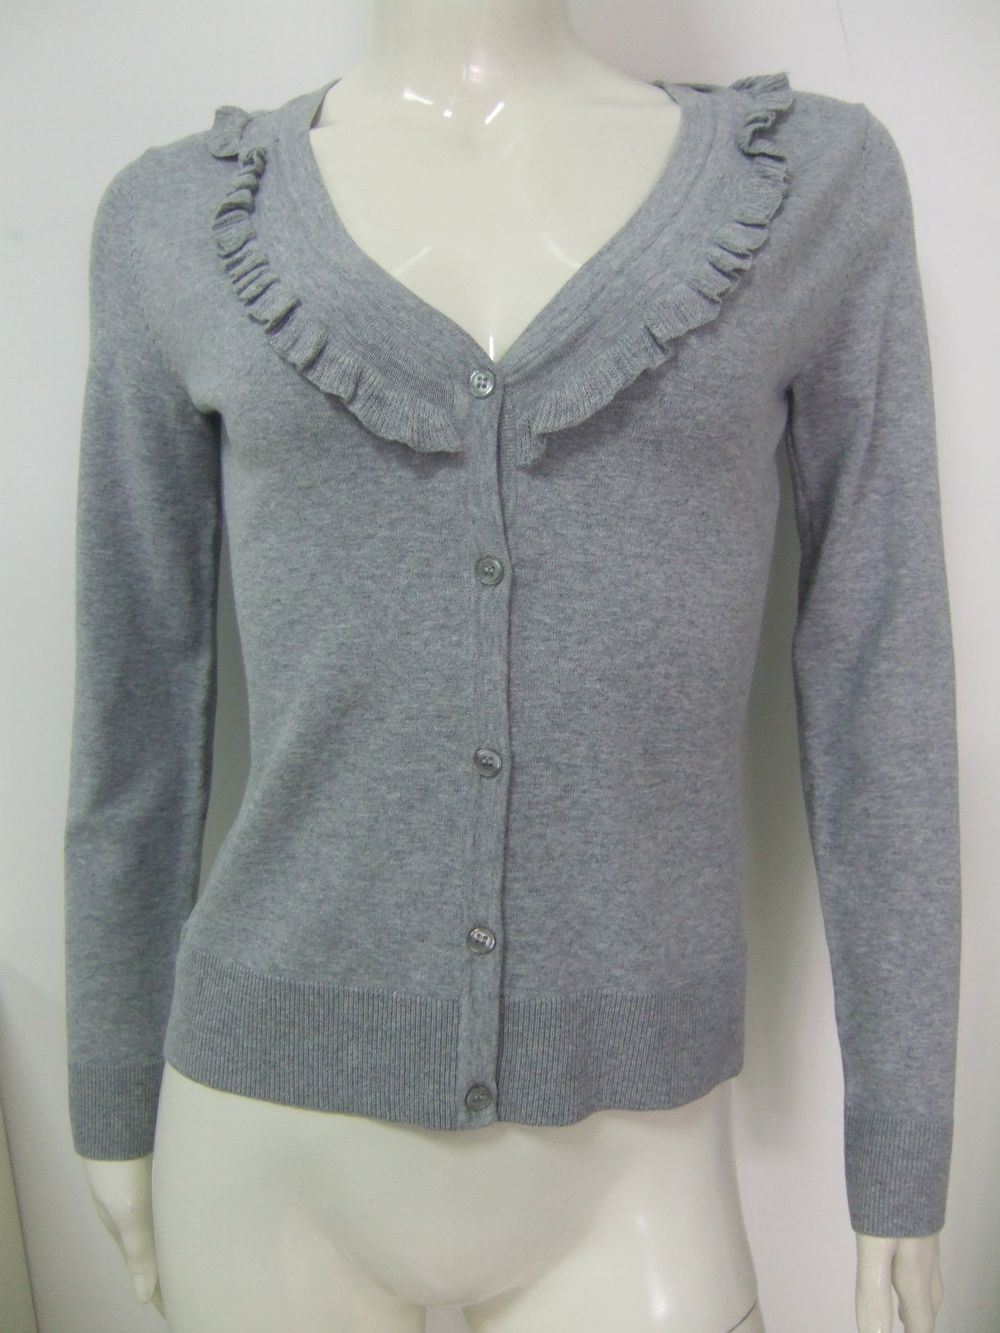 http://image.made-in-china.com/2f0j00vKEtVjMgOQoR/Women-s-V-Neck-Cardigan-SWW092905-.jpg